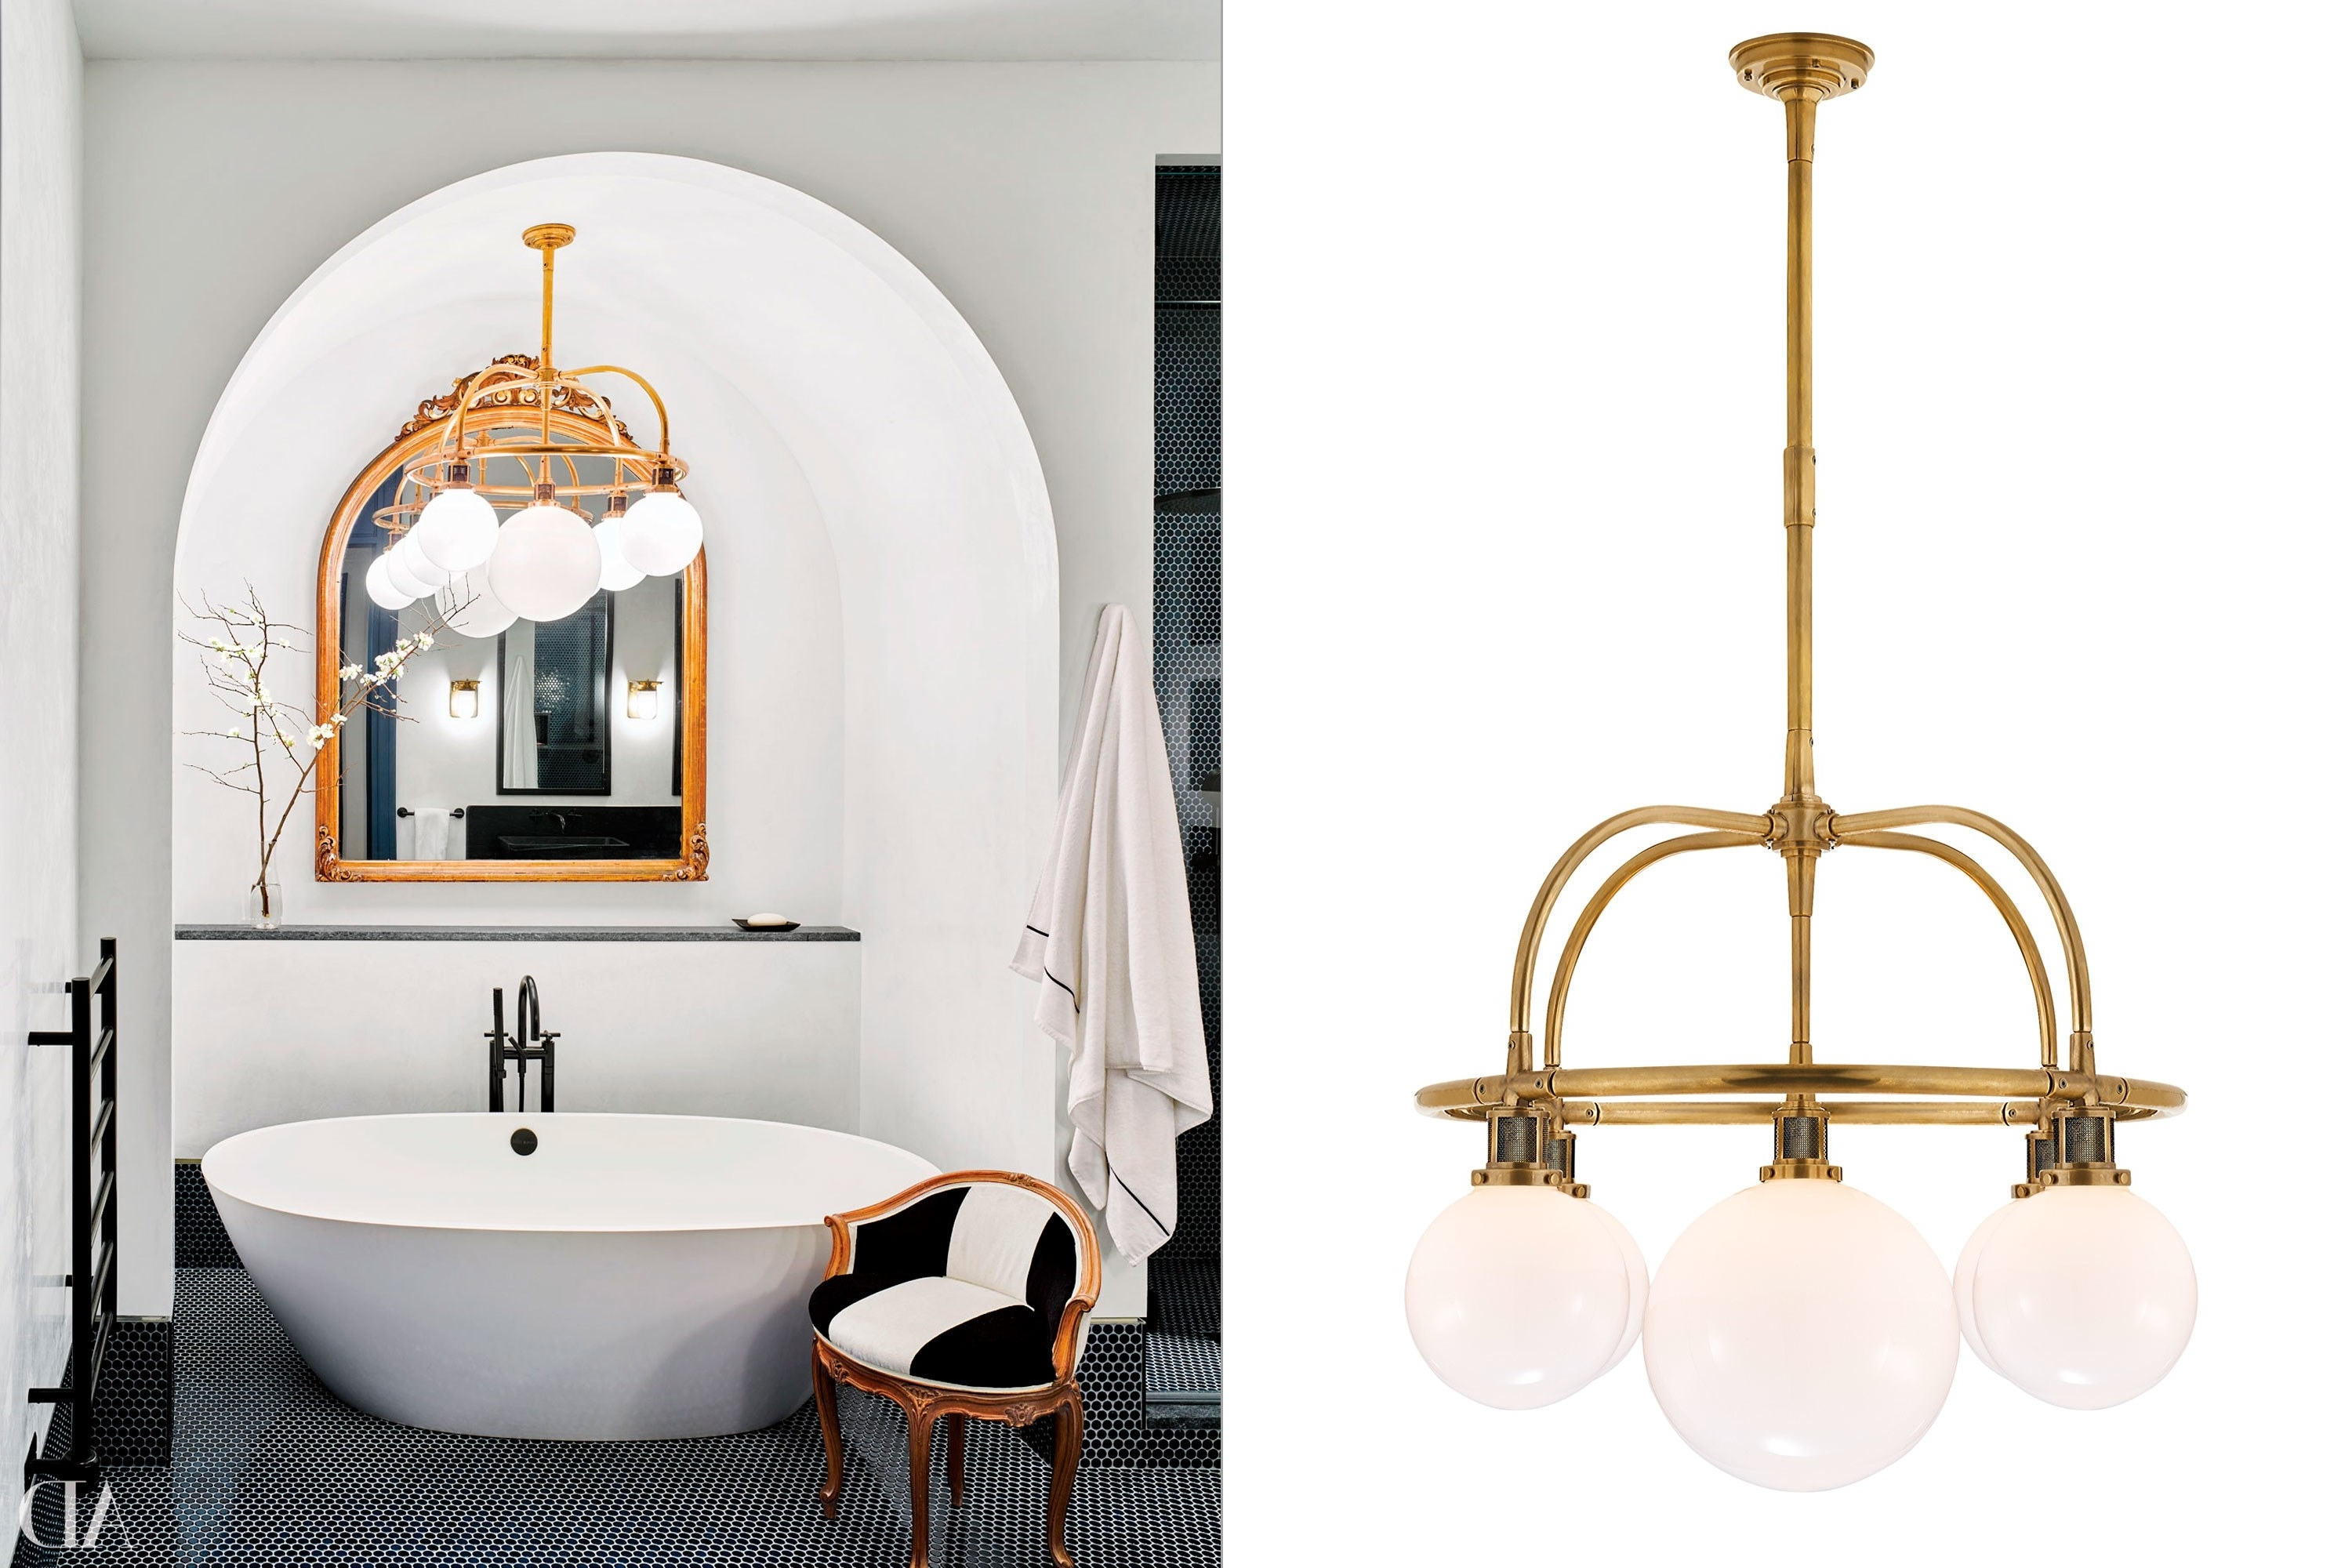 Chandelier Bathroom Lighting Fixtures Throughout 2018 Home Decor Ideas – Bathroom Lighting Photos (View 5 of 20)